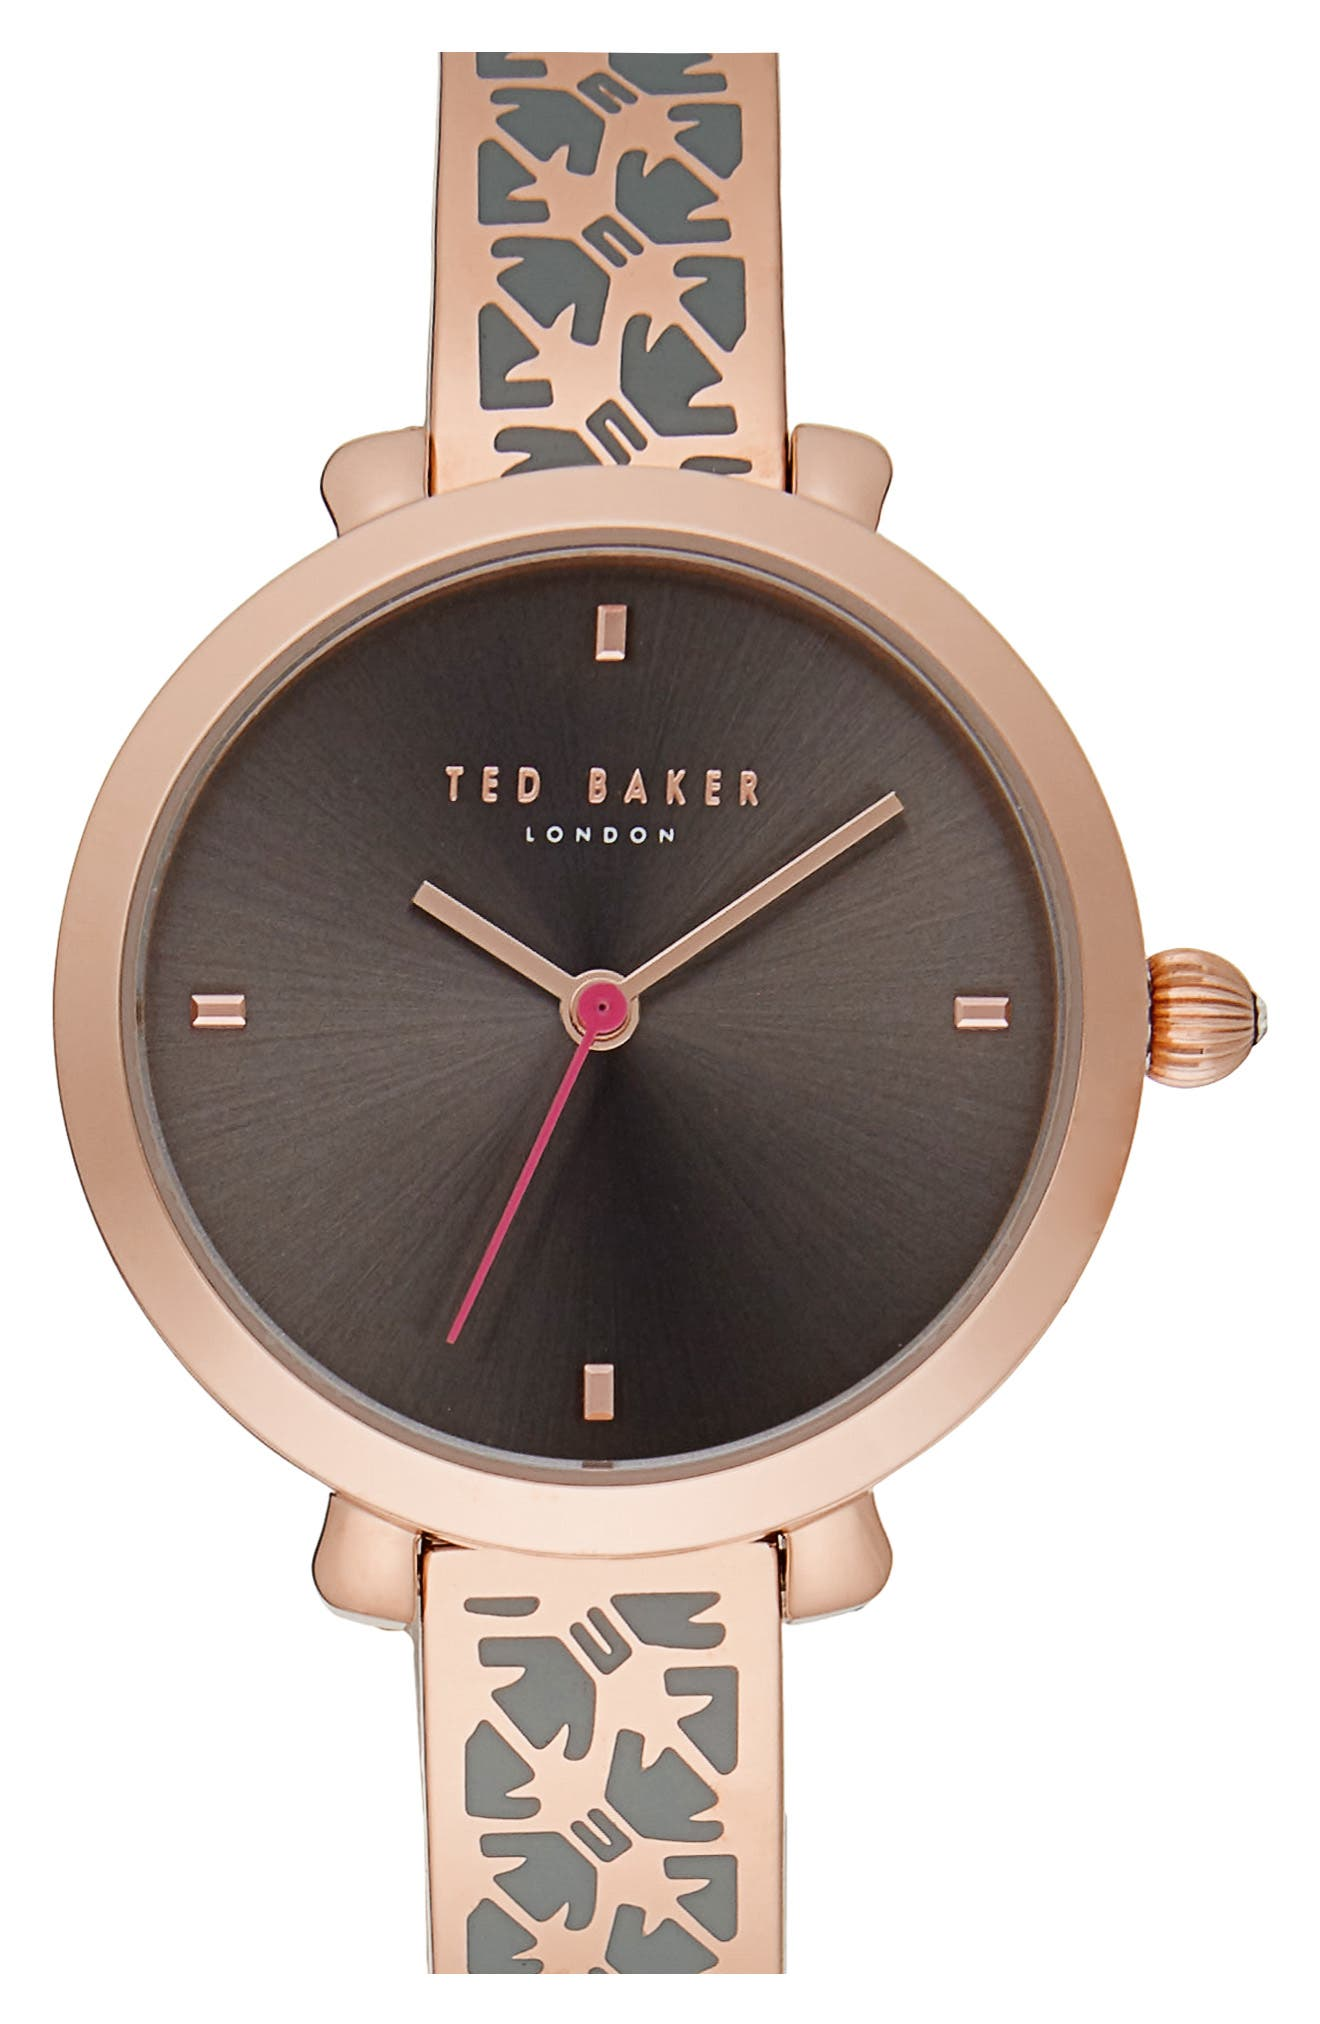 TED BAKER LONDON Bree Bracelet Watch, 30mm